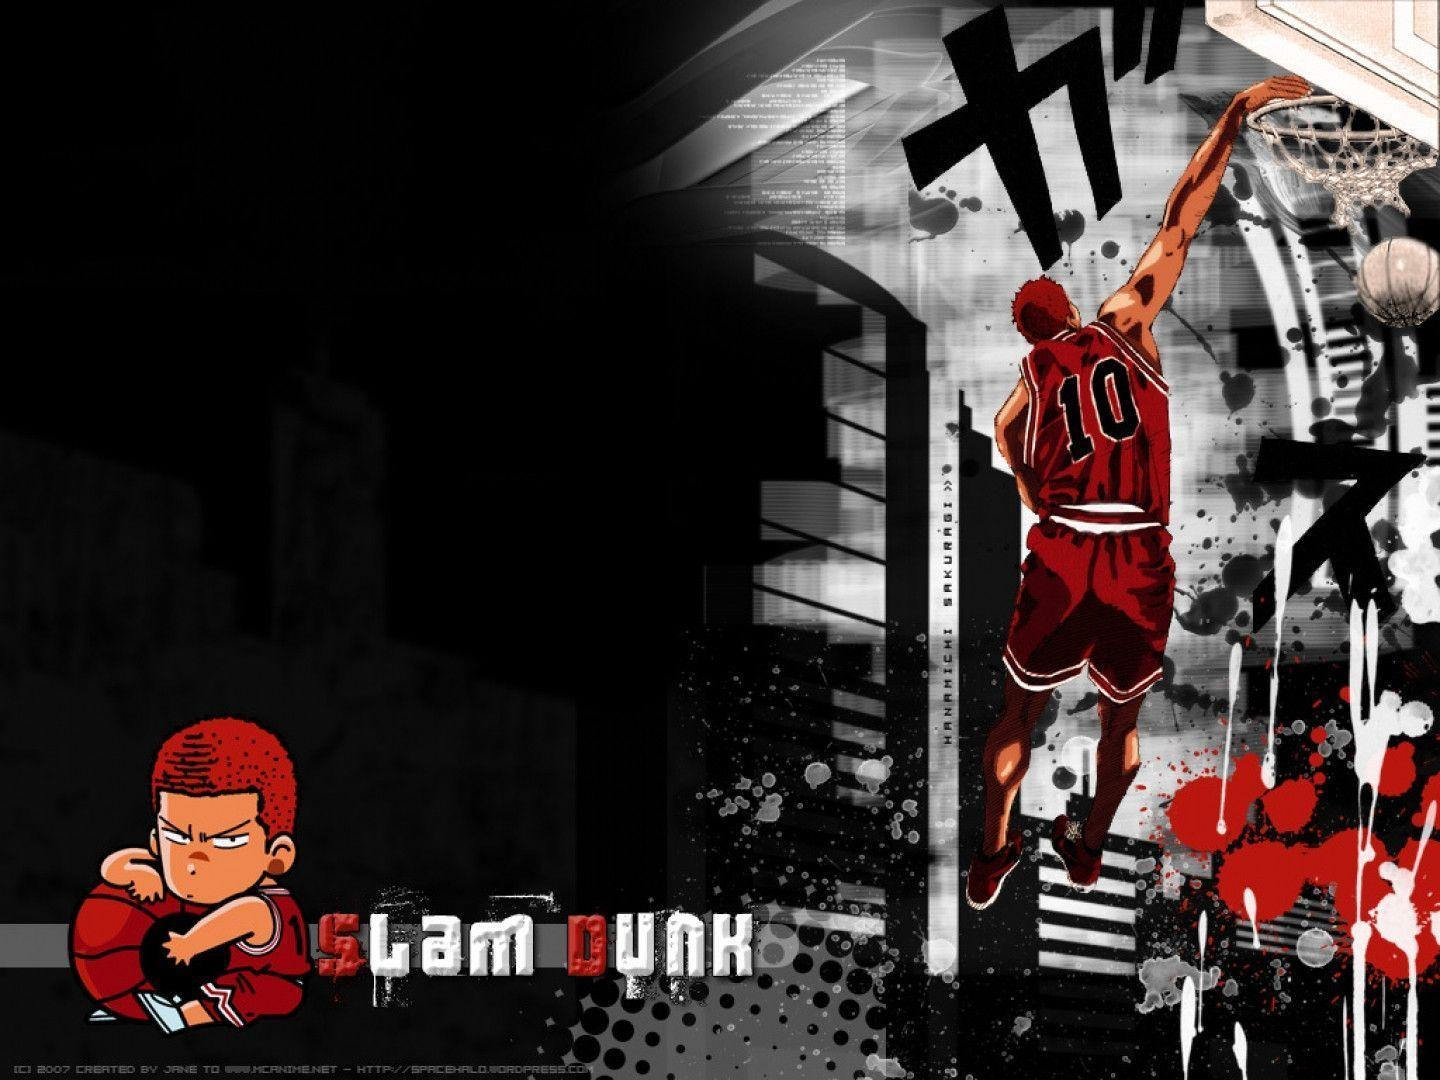 75 Slam Dunk Anime Wallpaper On Wallpapersafari